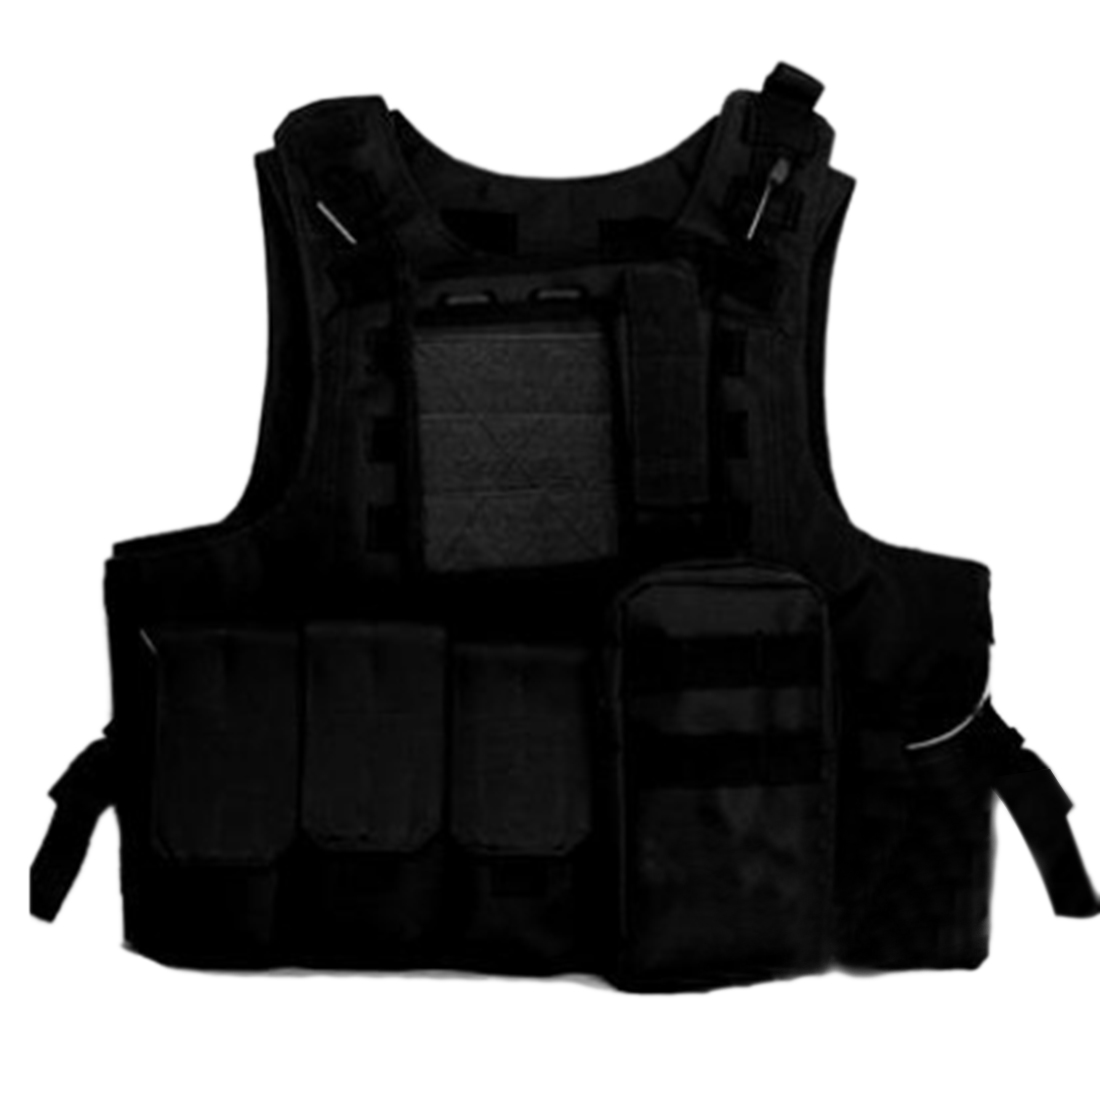 Outdoor Tactical Vest Men Waistcoat Combat Molle Military Multi Pockets Vest Oxford Sports CS Wargame Equipment Airsoft outdoor sports pockets sv012199